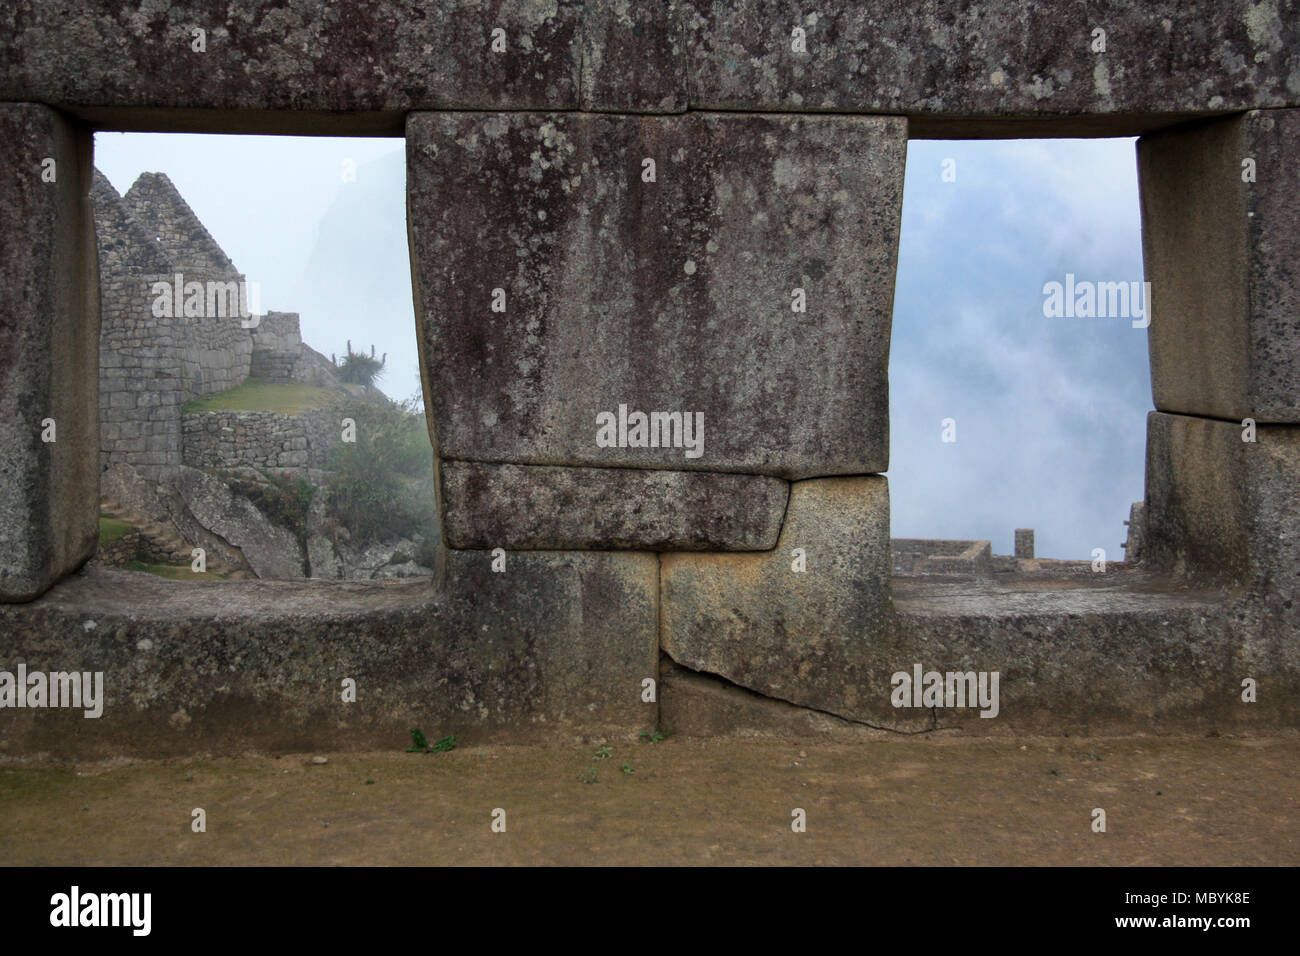 Trapezoidal windows of a building at the abandoned citadel of Machu Picchu on top of a Mountain Ridge above the Sacred Valley within the Rainforest - Stock Image